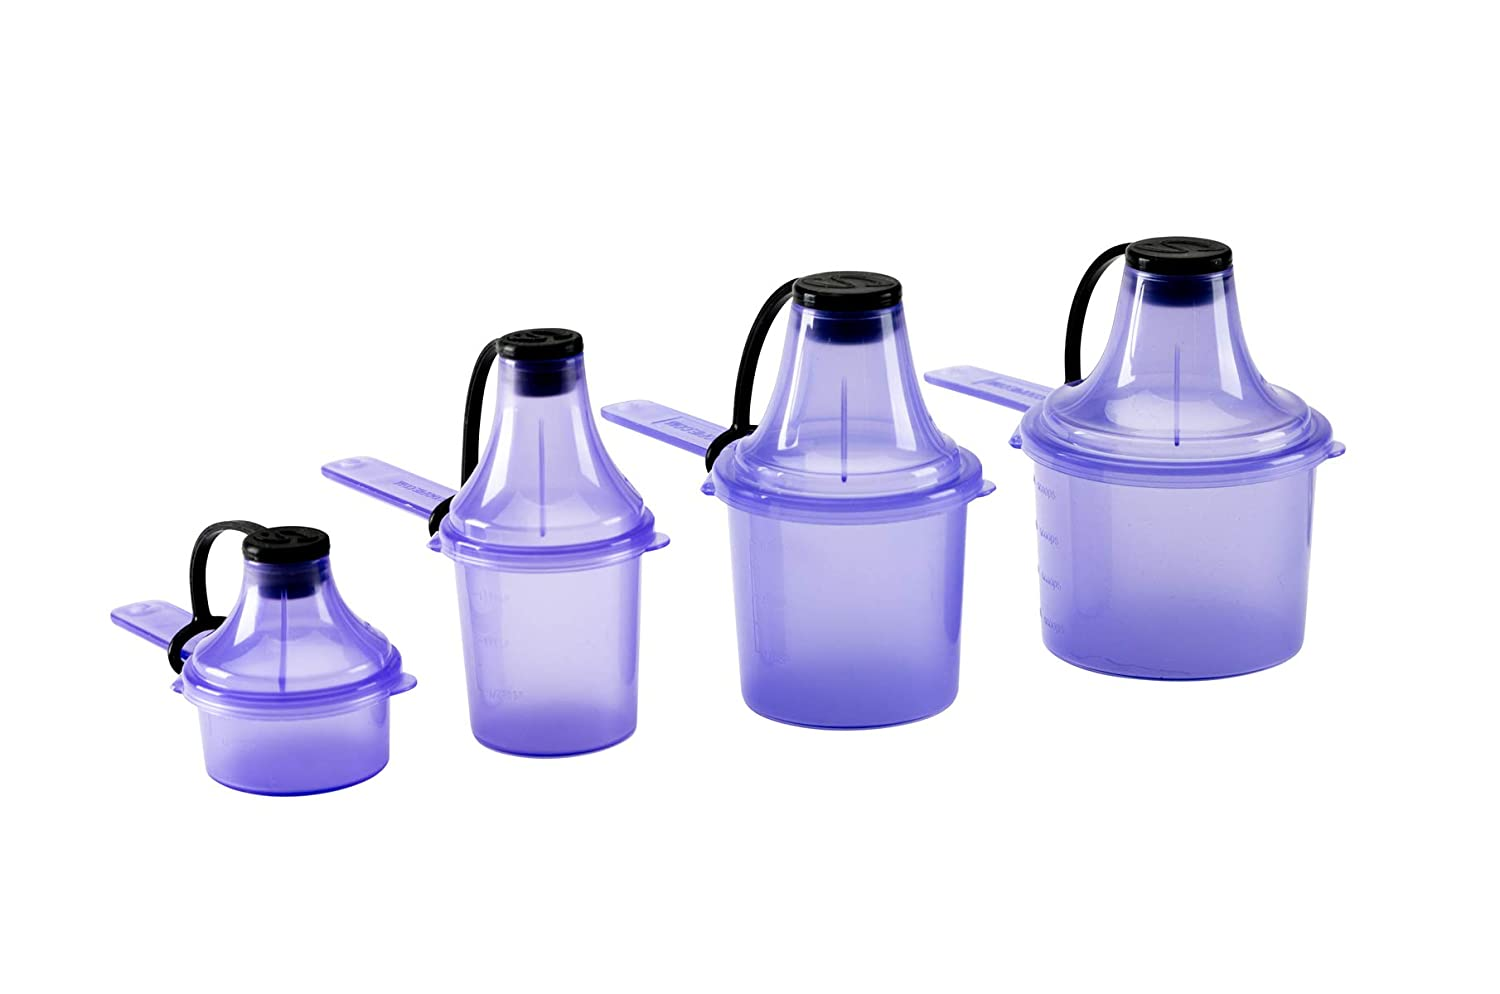 Scoopie Quad Pack 4 Count | Portable Scoop and Funnel Travel Container | Pre and Post Workout Pack | On The Go Powder Dispenser For Water Bottles and Shaker Bottles (15cc / 30cc / 60cc / 90cc, Black) The Scoopie QP0002